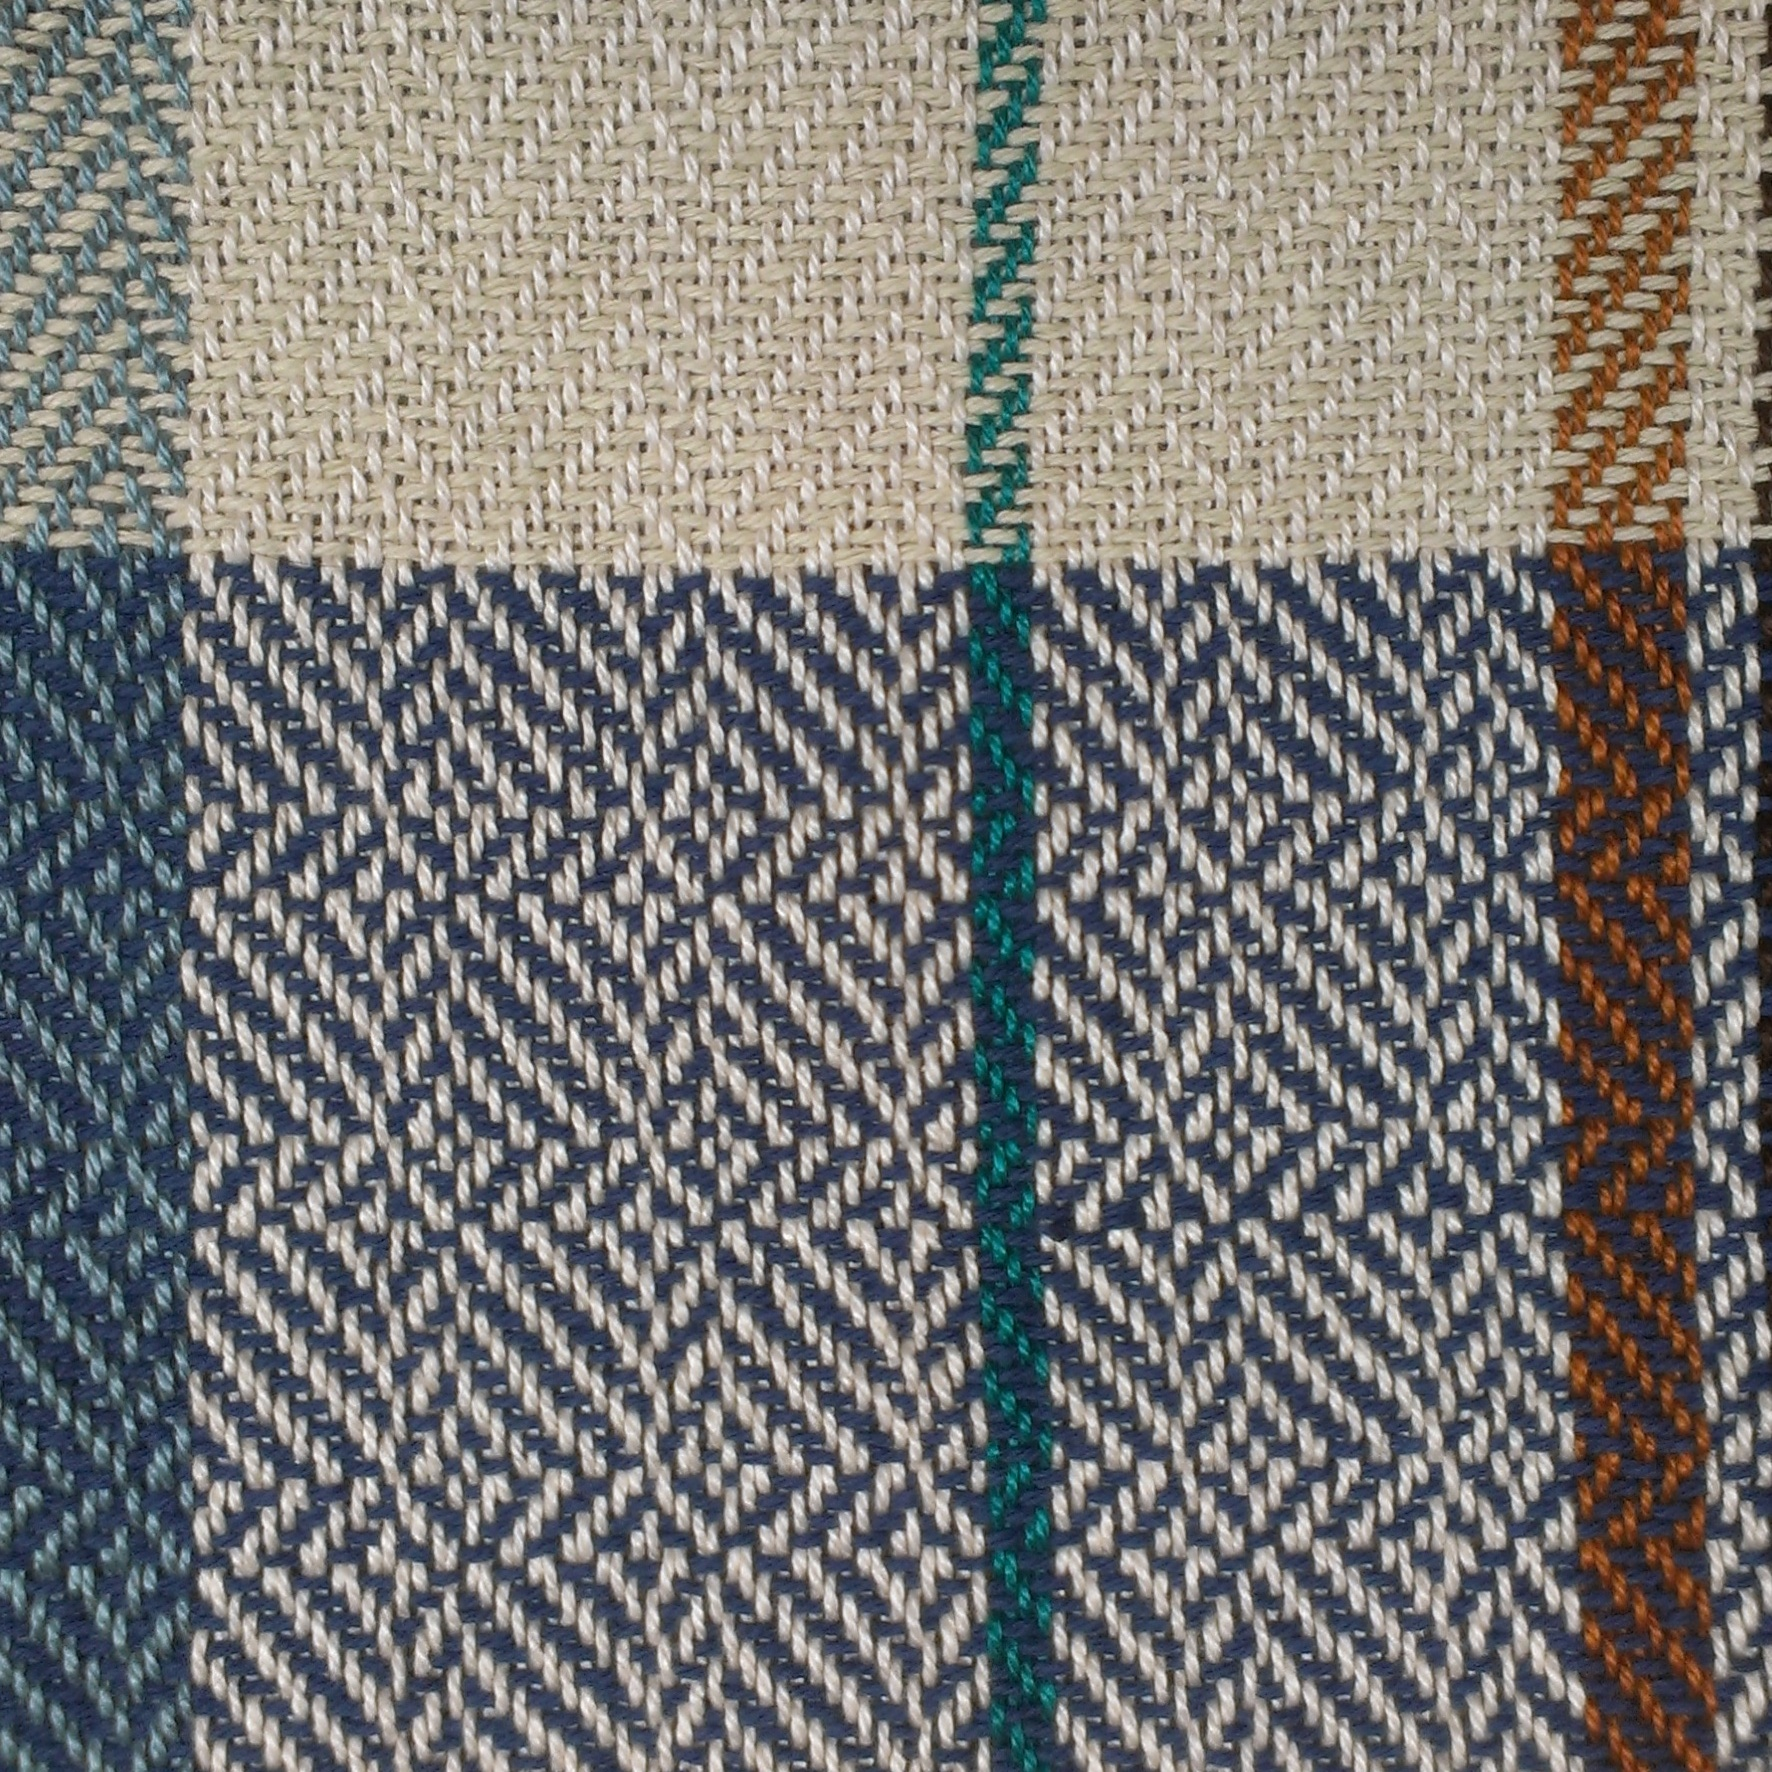 Lost at Sea (detail), 2014, handwoven cotton